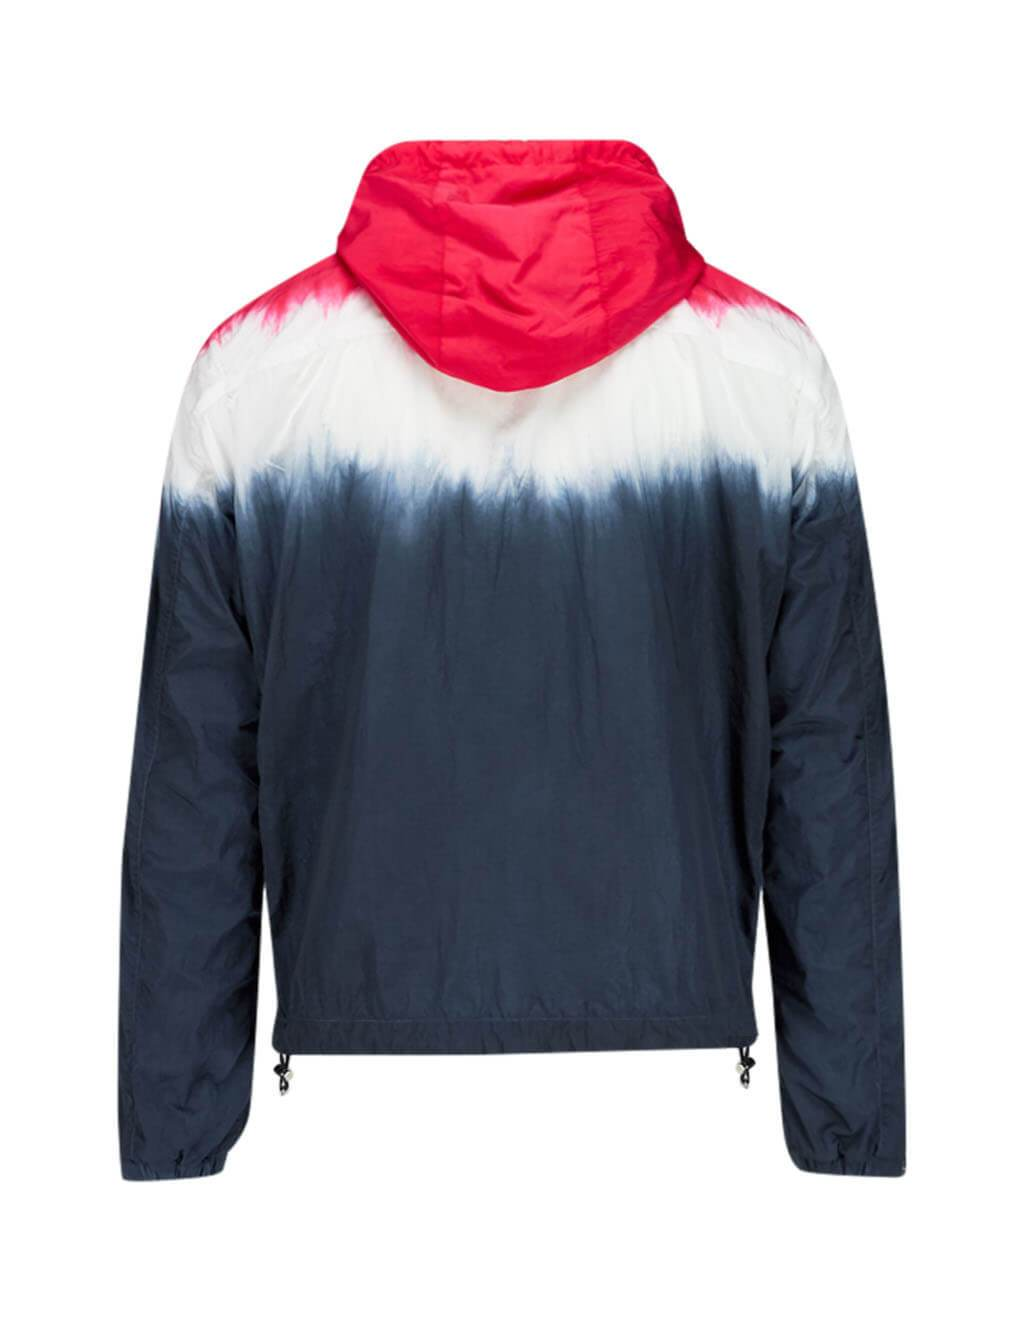 Buy Newest Moncler Coat - Top Quality